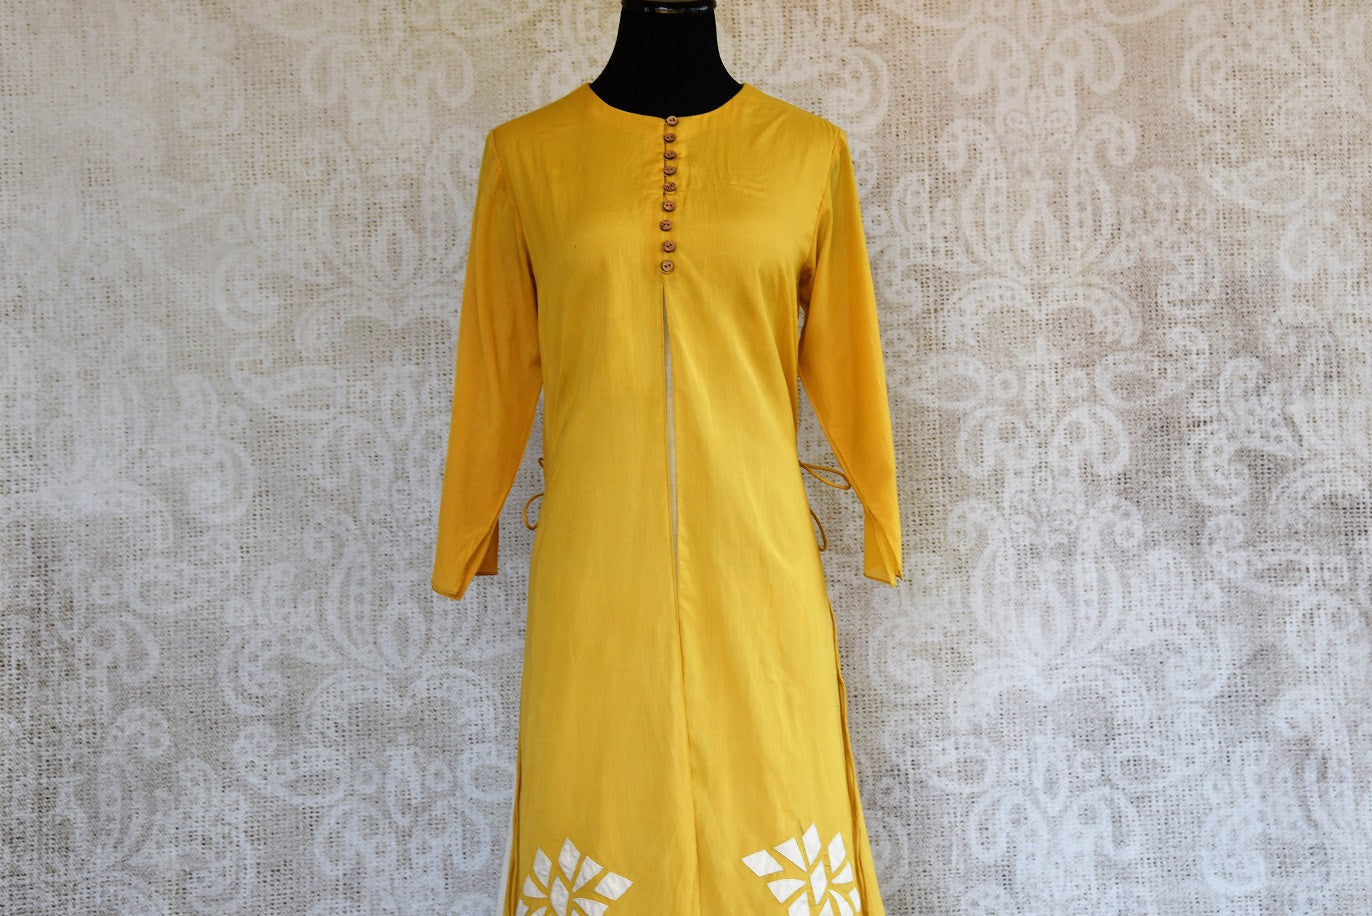 Buy this mustard Indo western yellow and white Indian ethnic dress online from our Pure Elegance store in USA. It is perfect for any wedding or reception party. Top View.